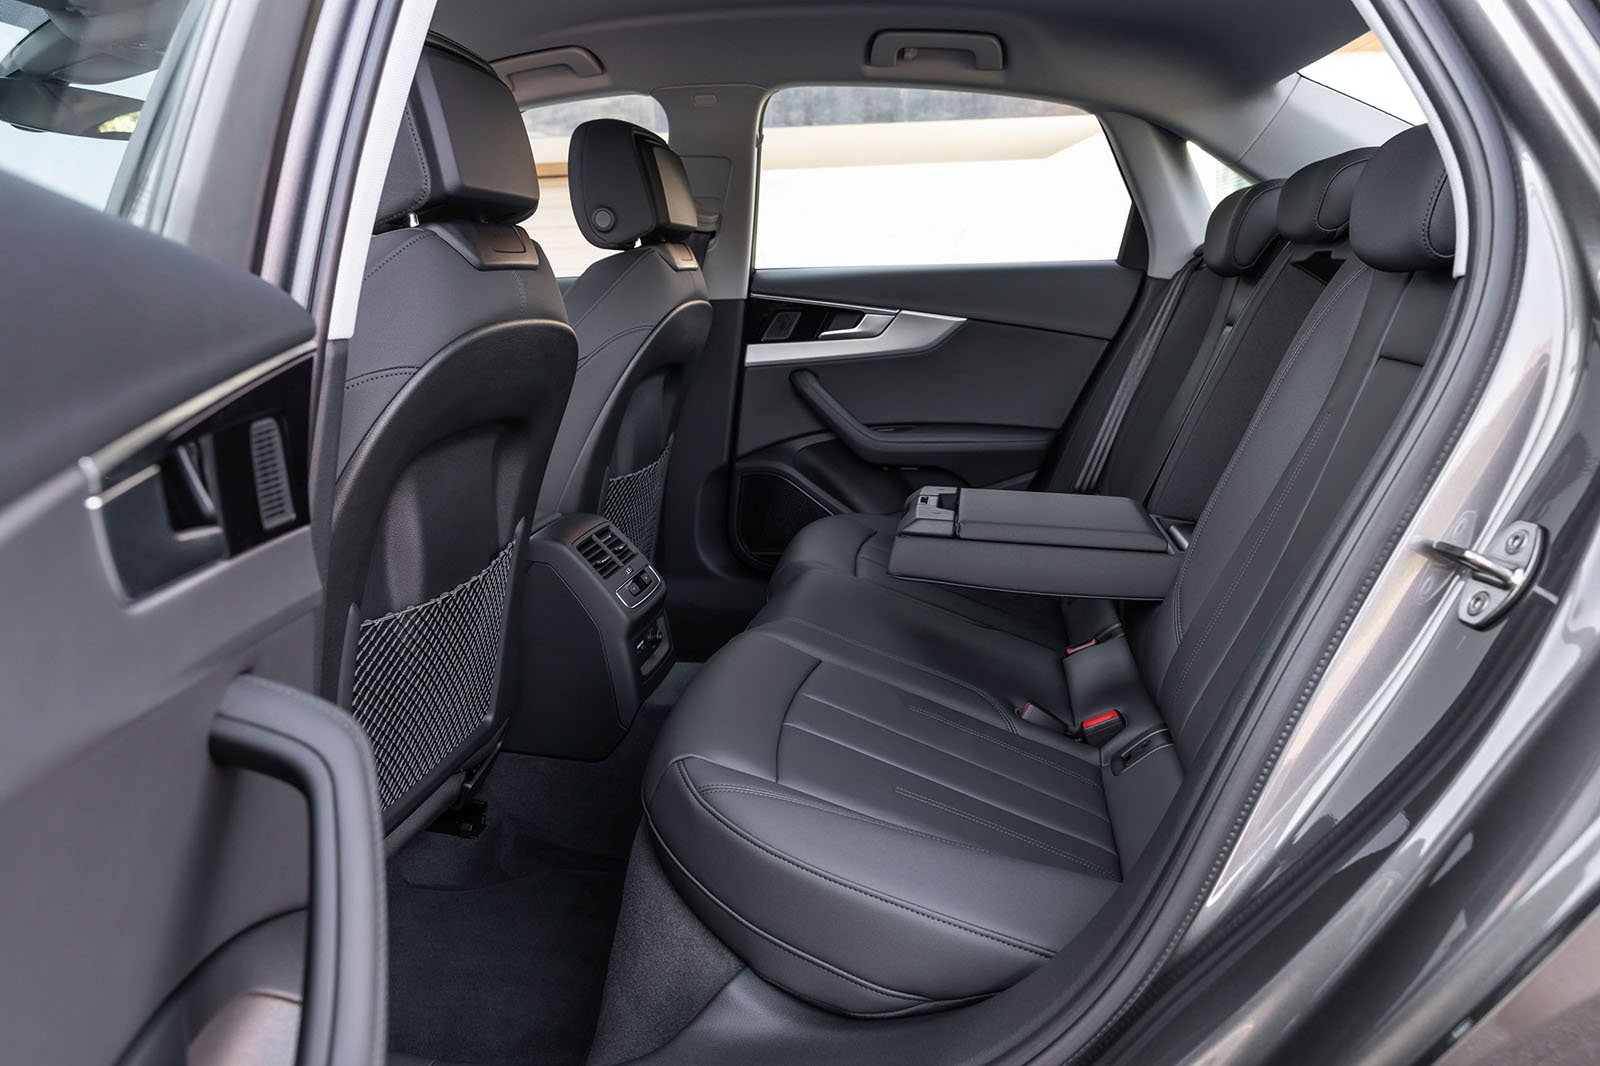 Audi A4 2019 LHD rear seats